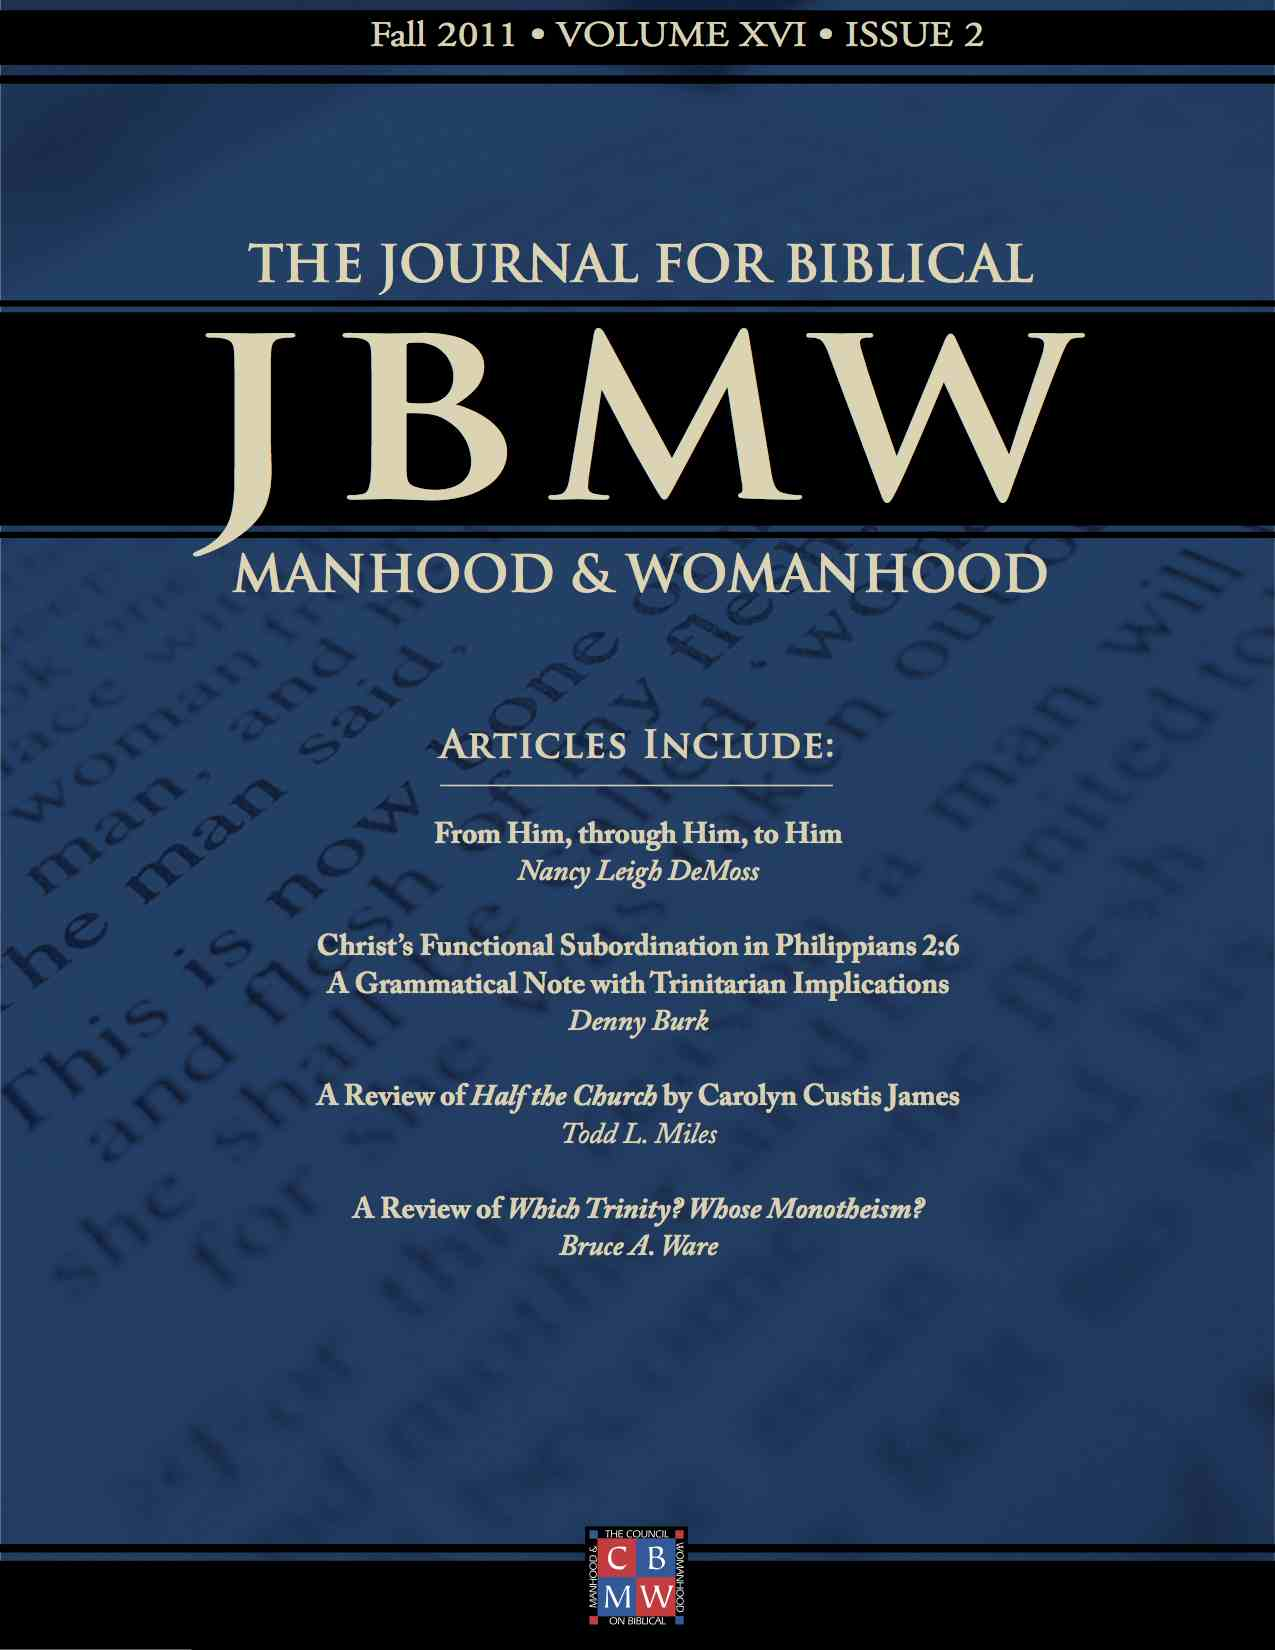 Journal for Biblical Manhood and Womanhood table of contents available